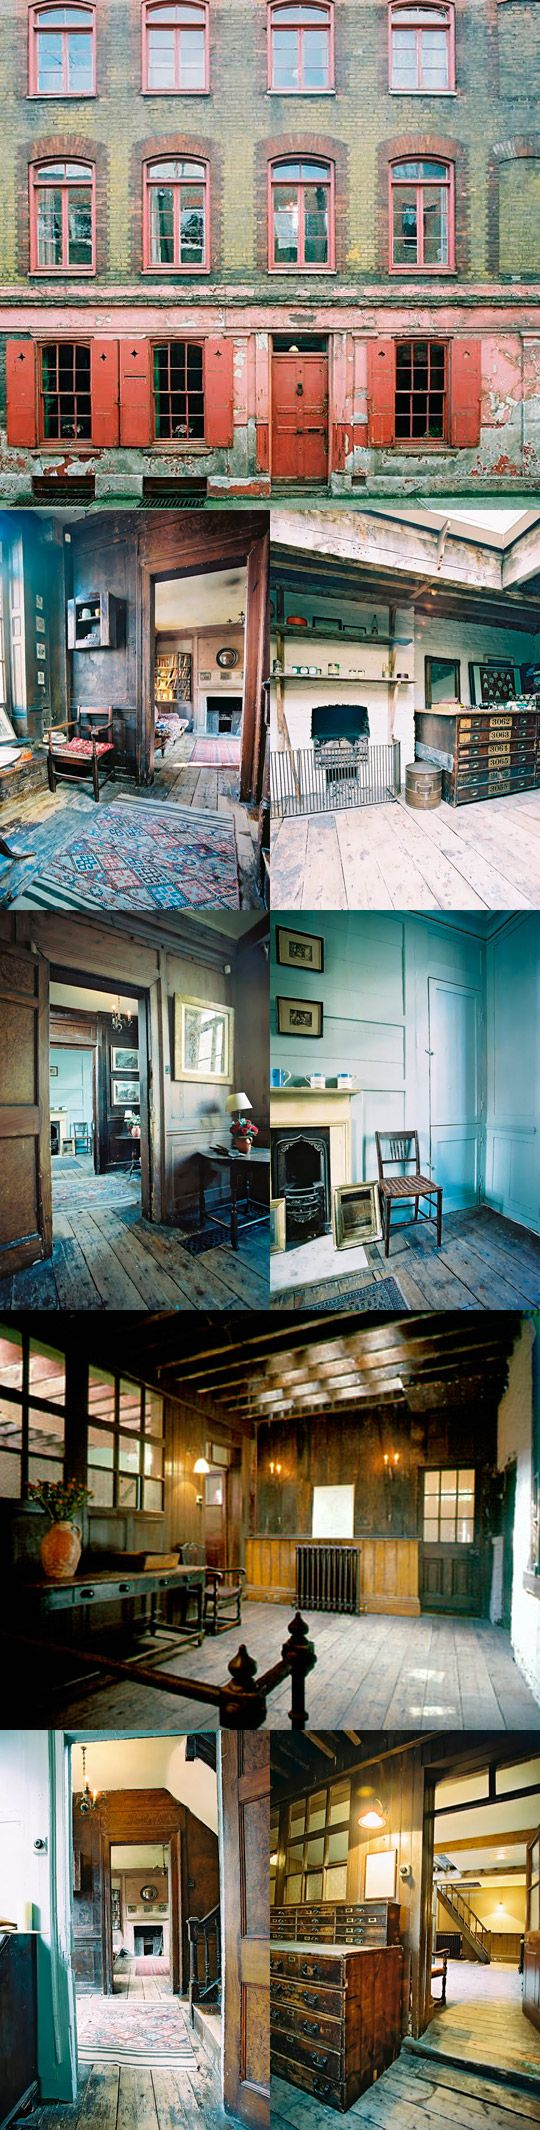 No. 4 Princelet Street, London - What I would give to live in this kind of flat over there...